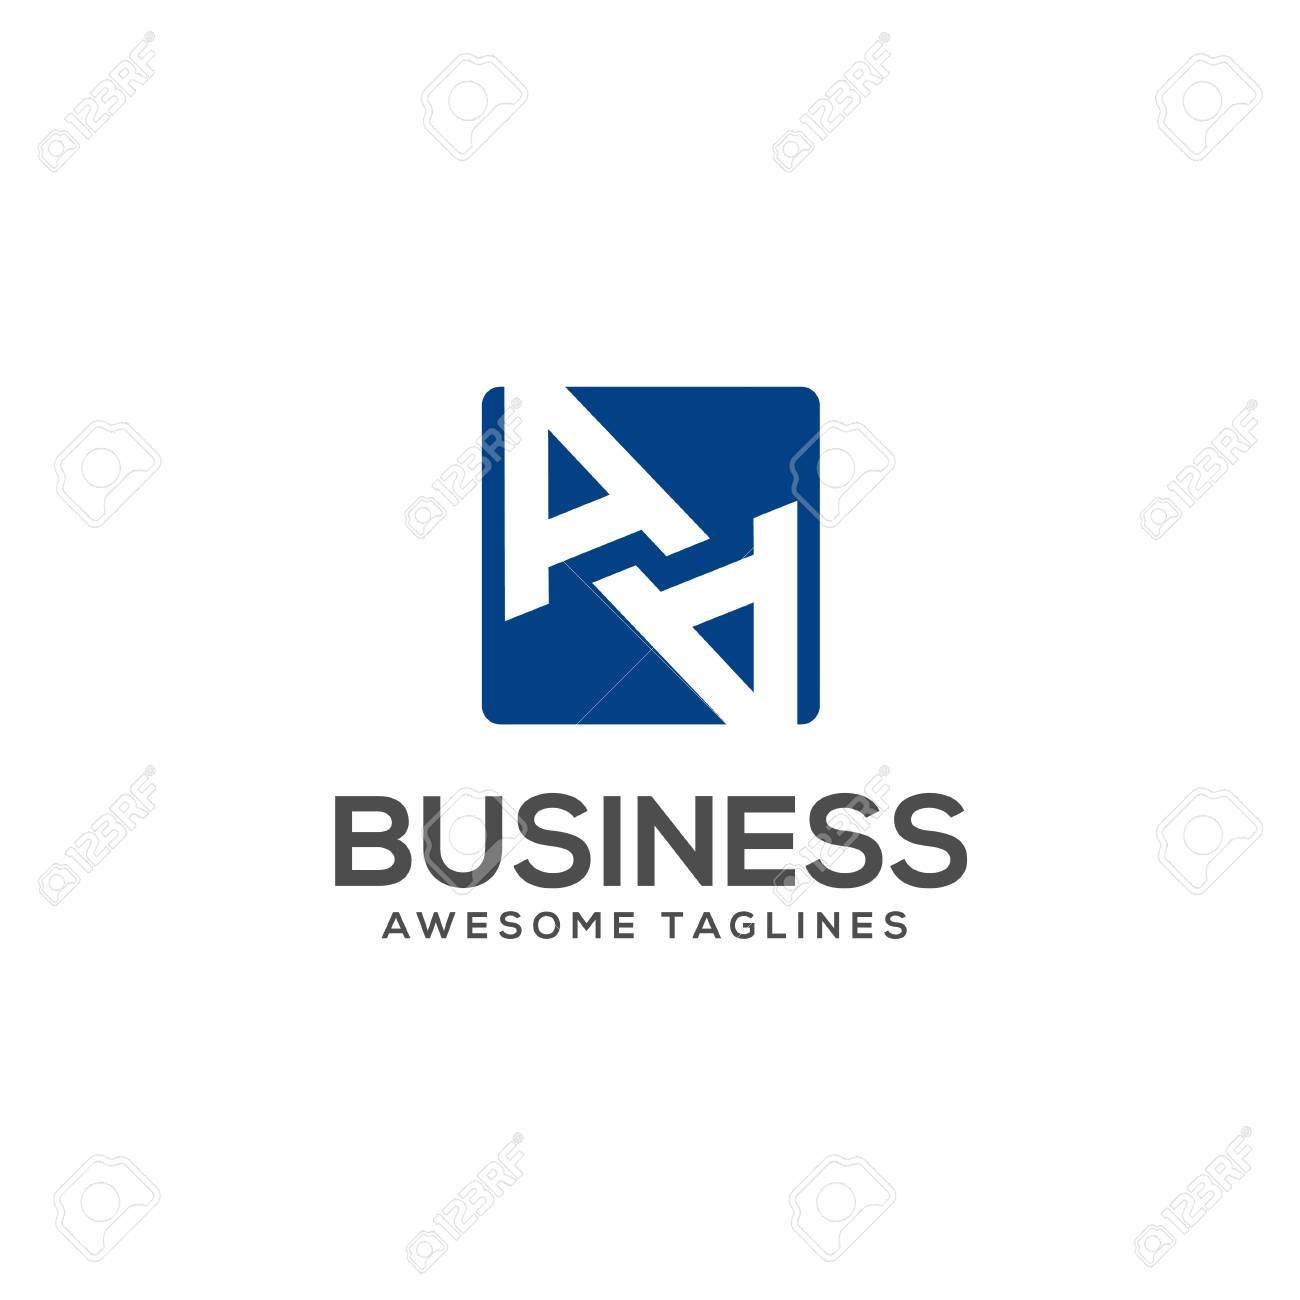 Aa Letter With Square Background Logo Design Vector Illustration Royalty Free Cliparts Vectors And Stock Illustration Image 87330074